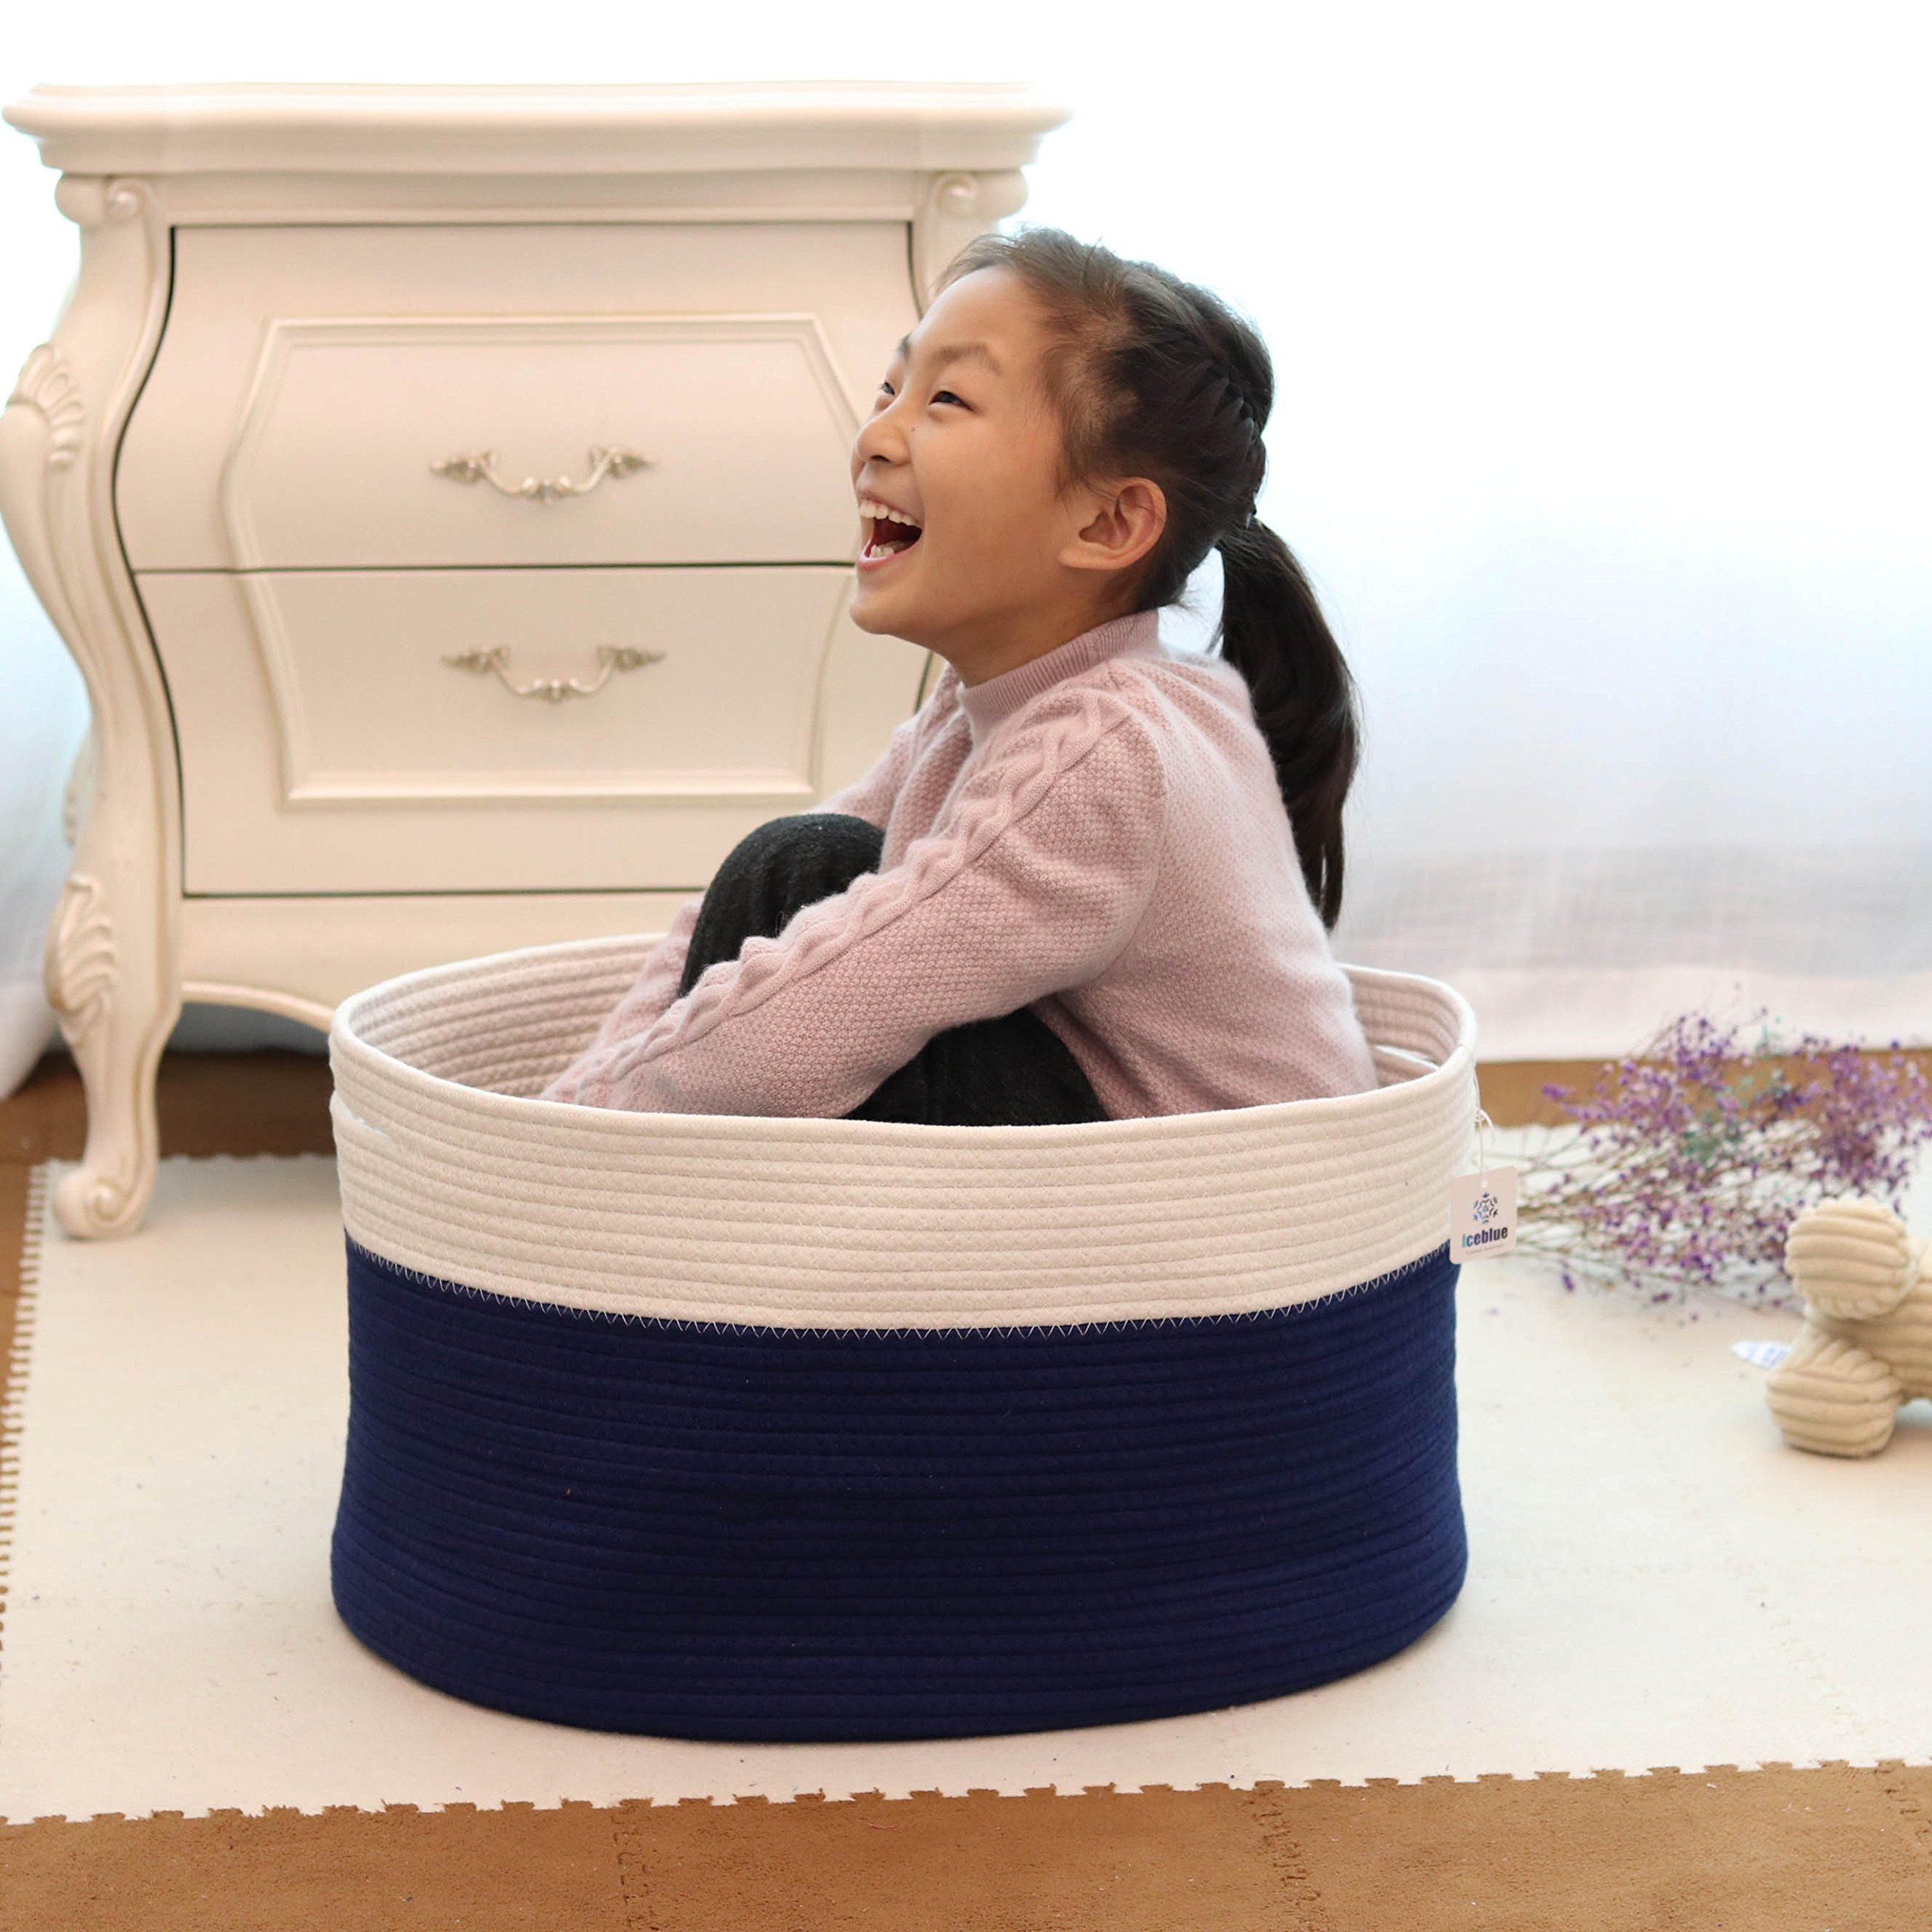 ICEBLUE HD Extra Large Cotton Rope Toy Organizer Floor Basket Big Collapsible Nursery Storage Basket Large Storage Basket for Blankets